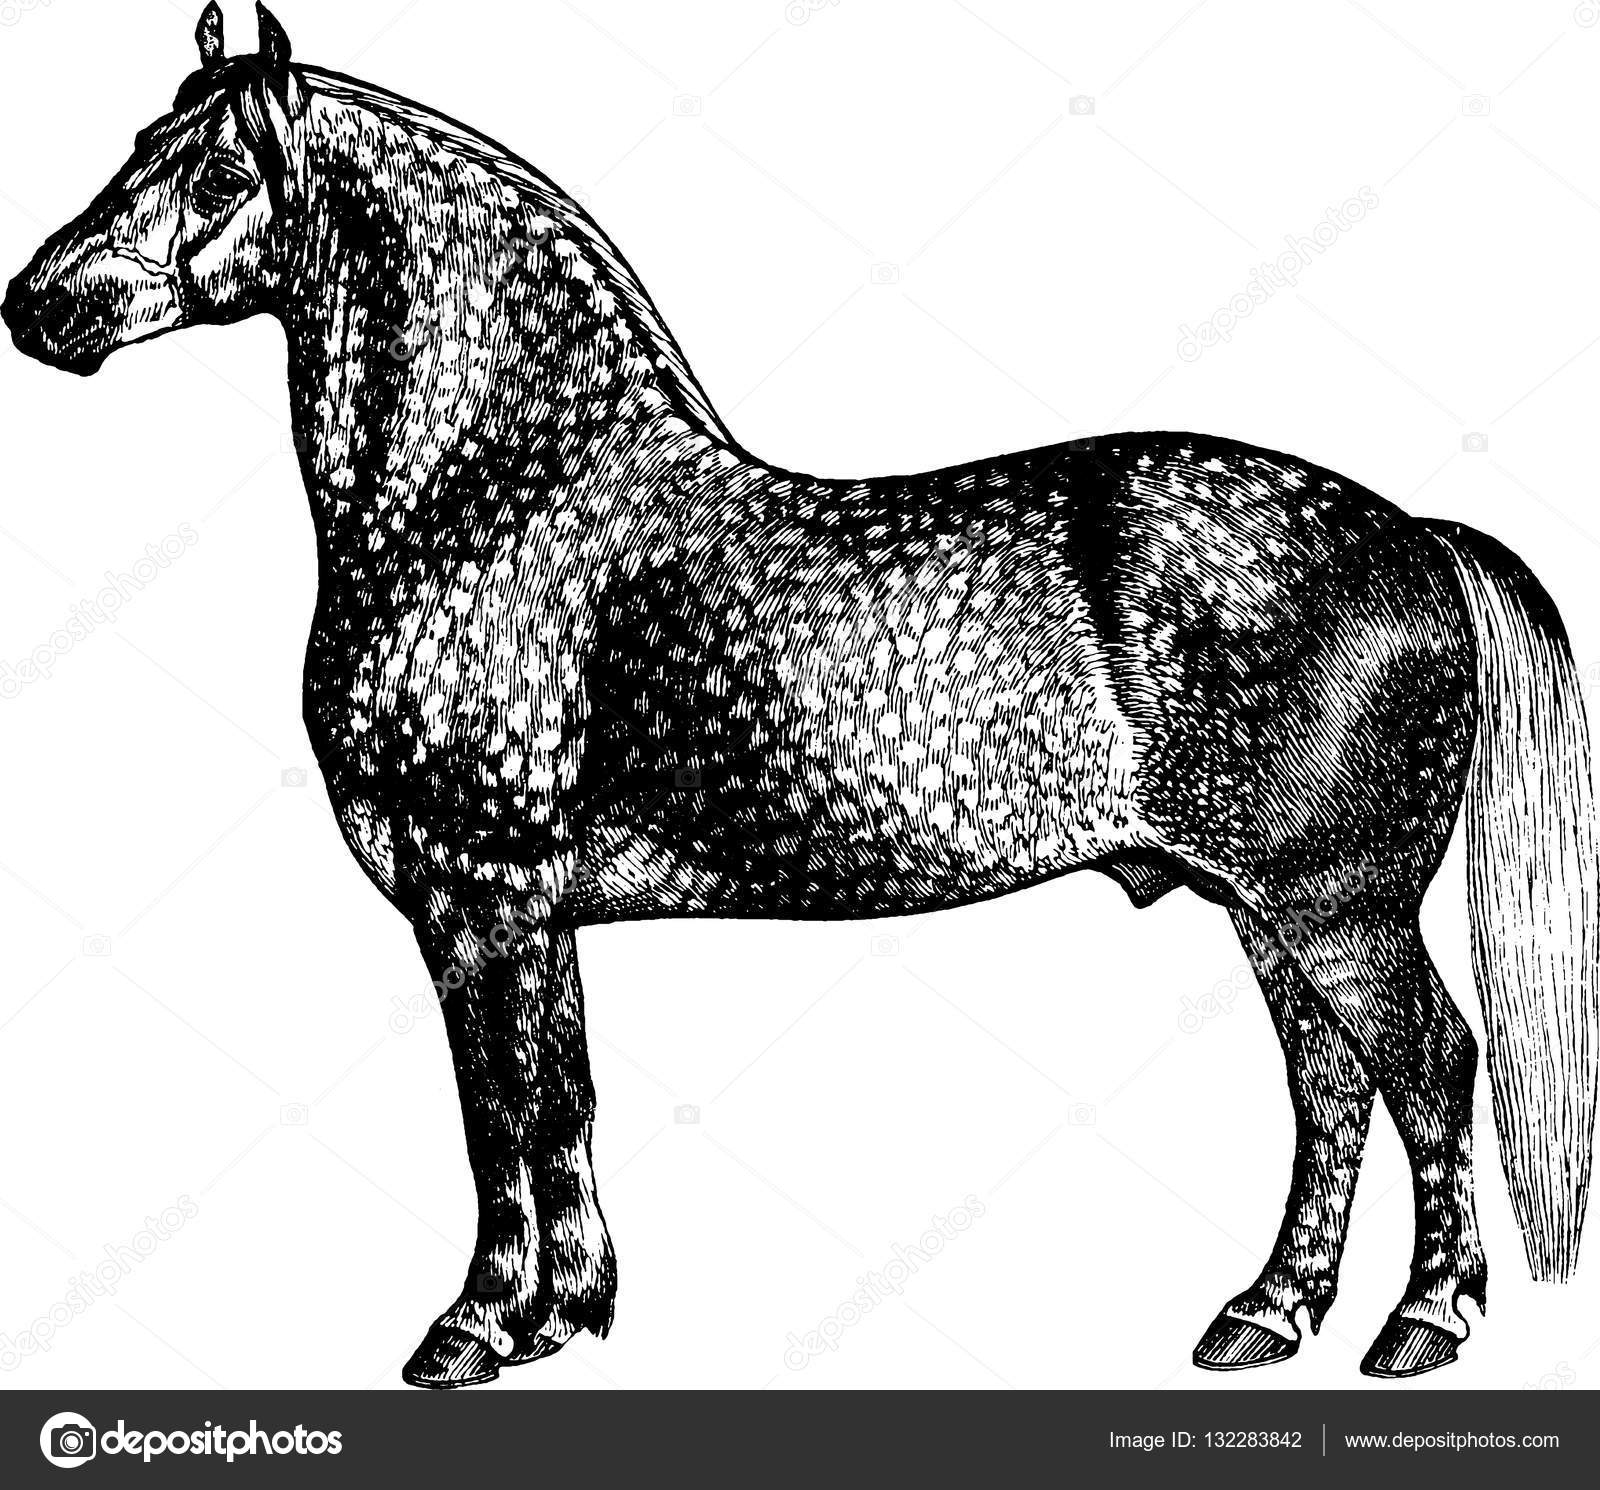 Pictures Antique Horses Vintage Illustration Horse Stock Photo C Unorobus Gmail Com 132283842